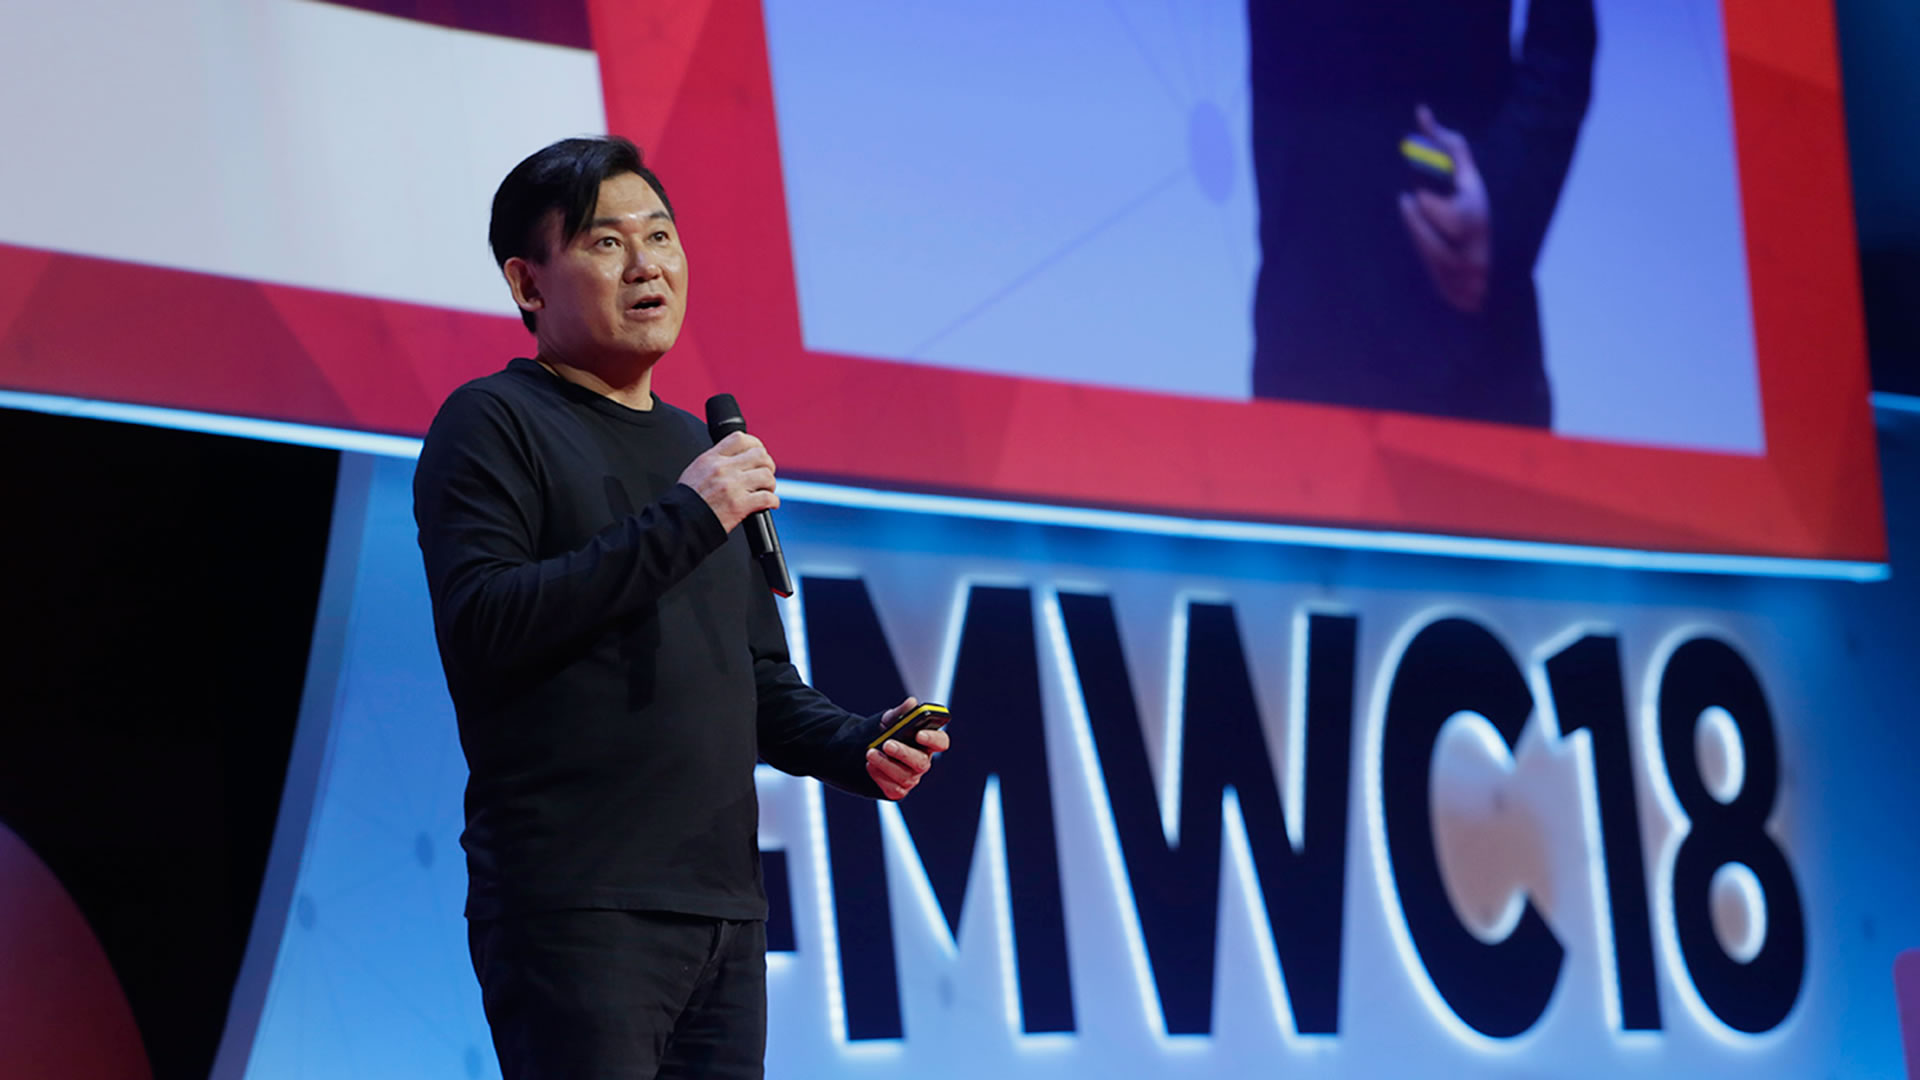 Mobile World Congressに三木谷が登壇